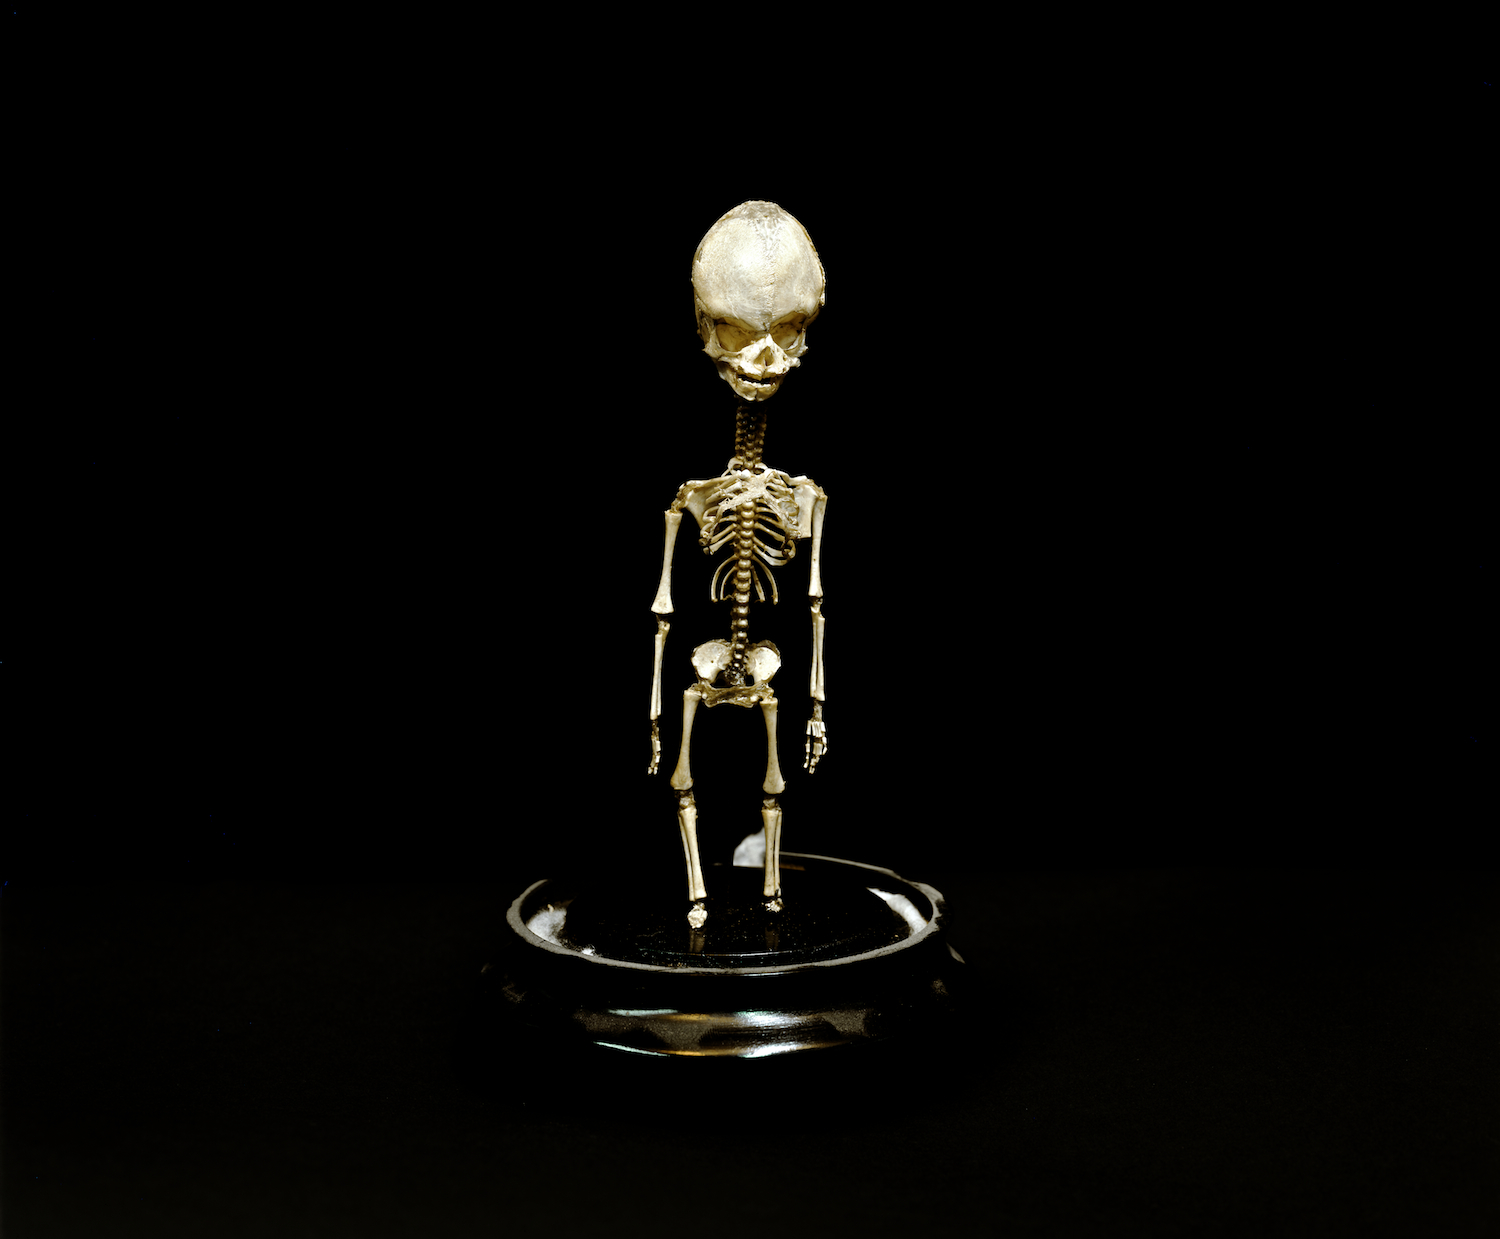 """Little Skeleton, Mutter Museum, 2004"" by Neal Rantoul (courtesy of the artist and 555 Gallery, Boston)"